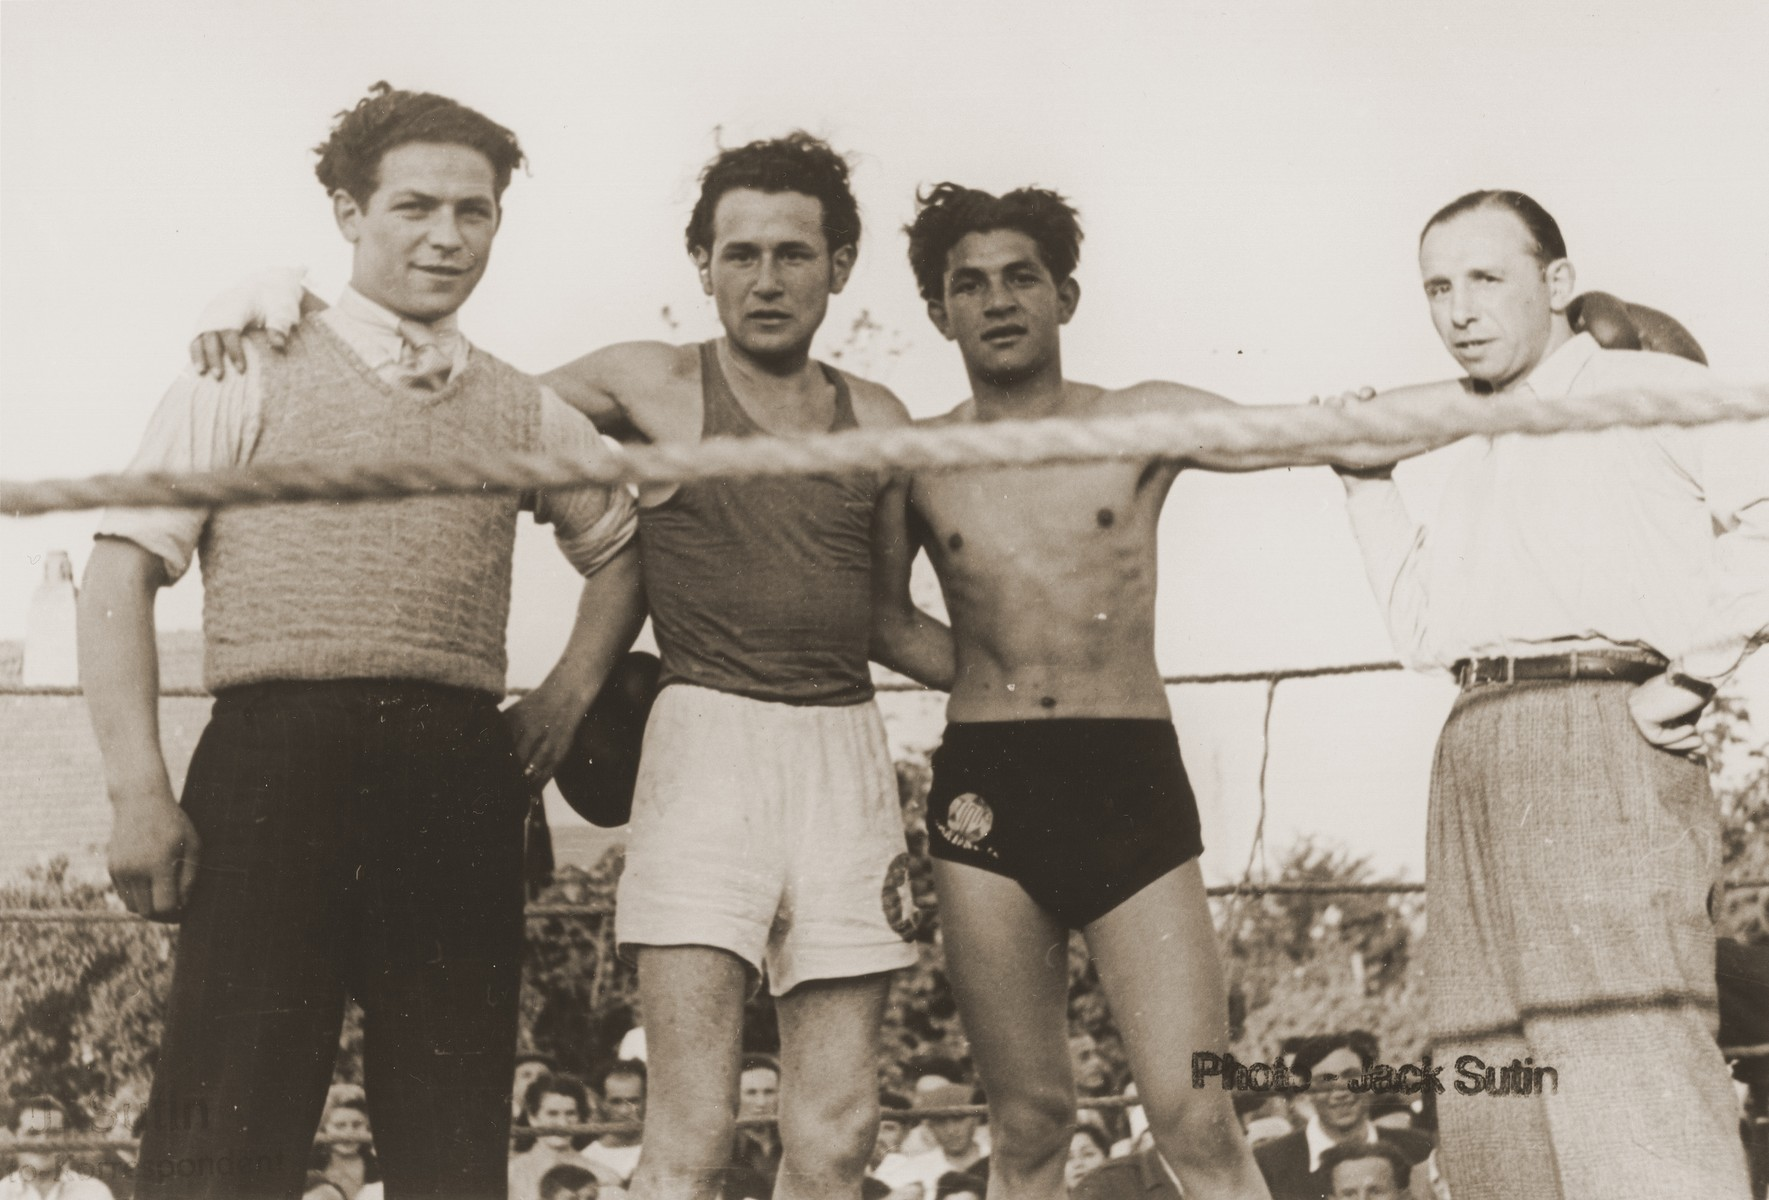 Boxing match in the Neu Freimann displaced persons camp.